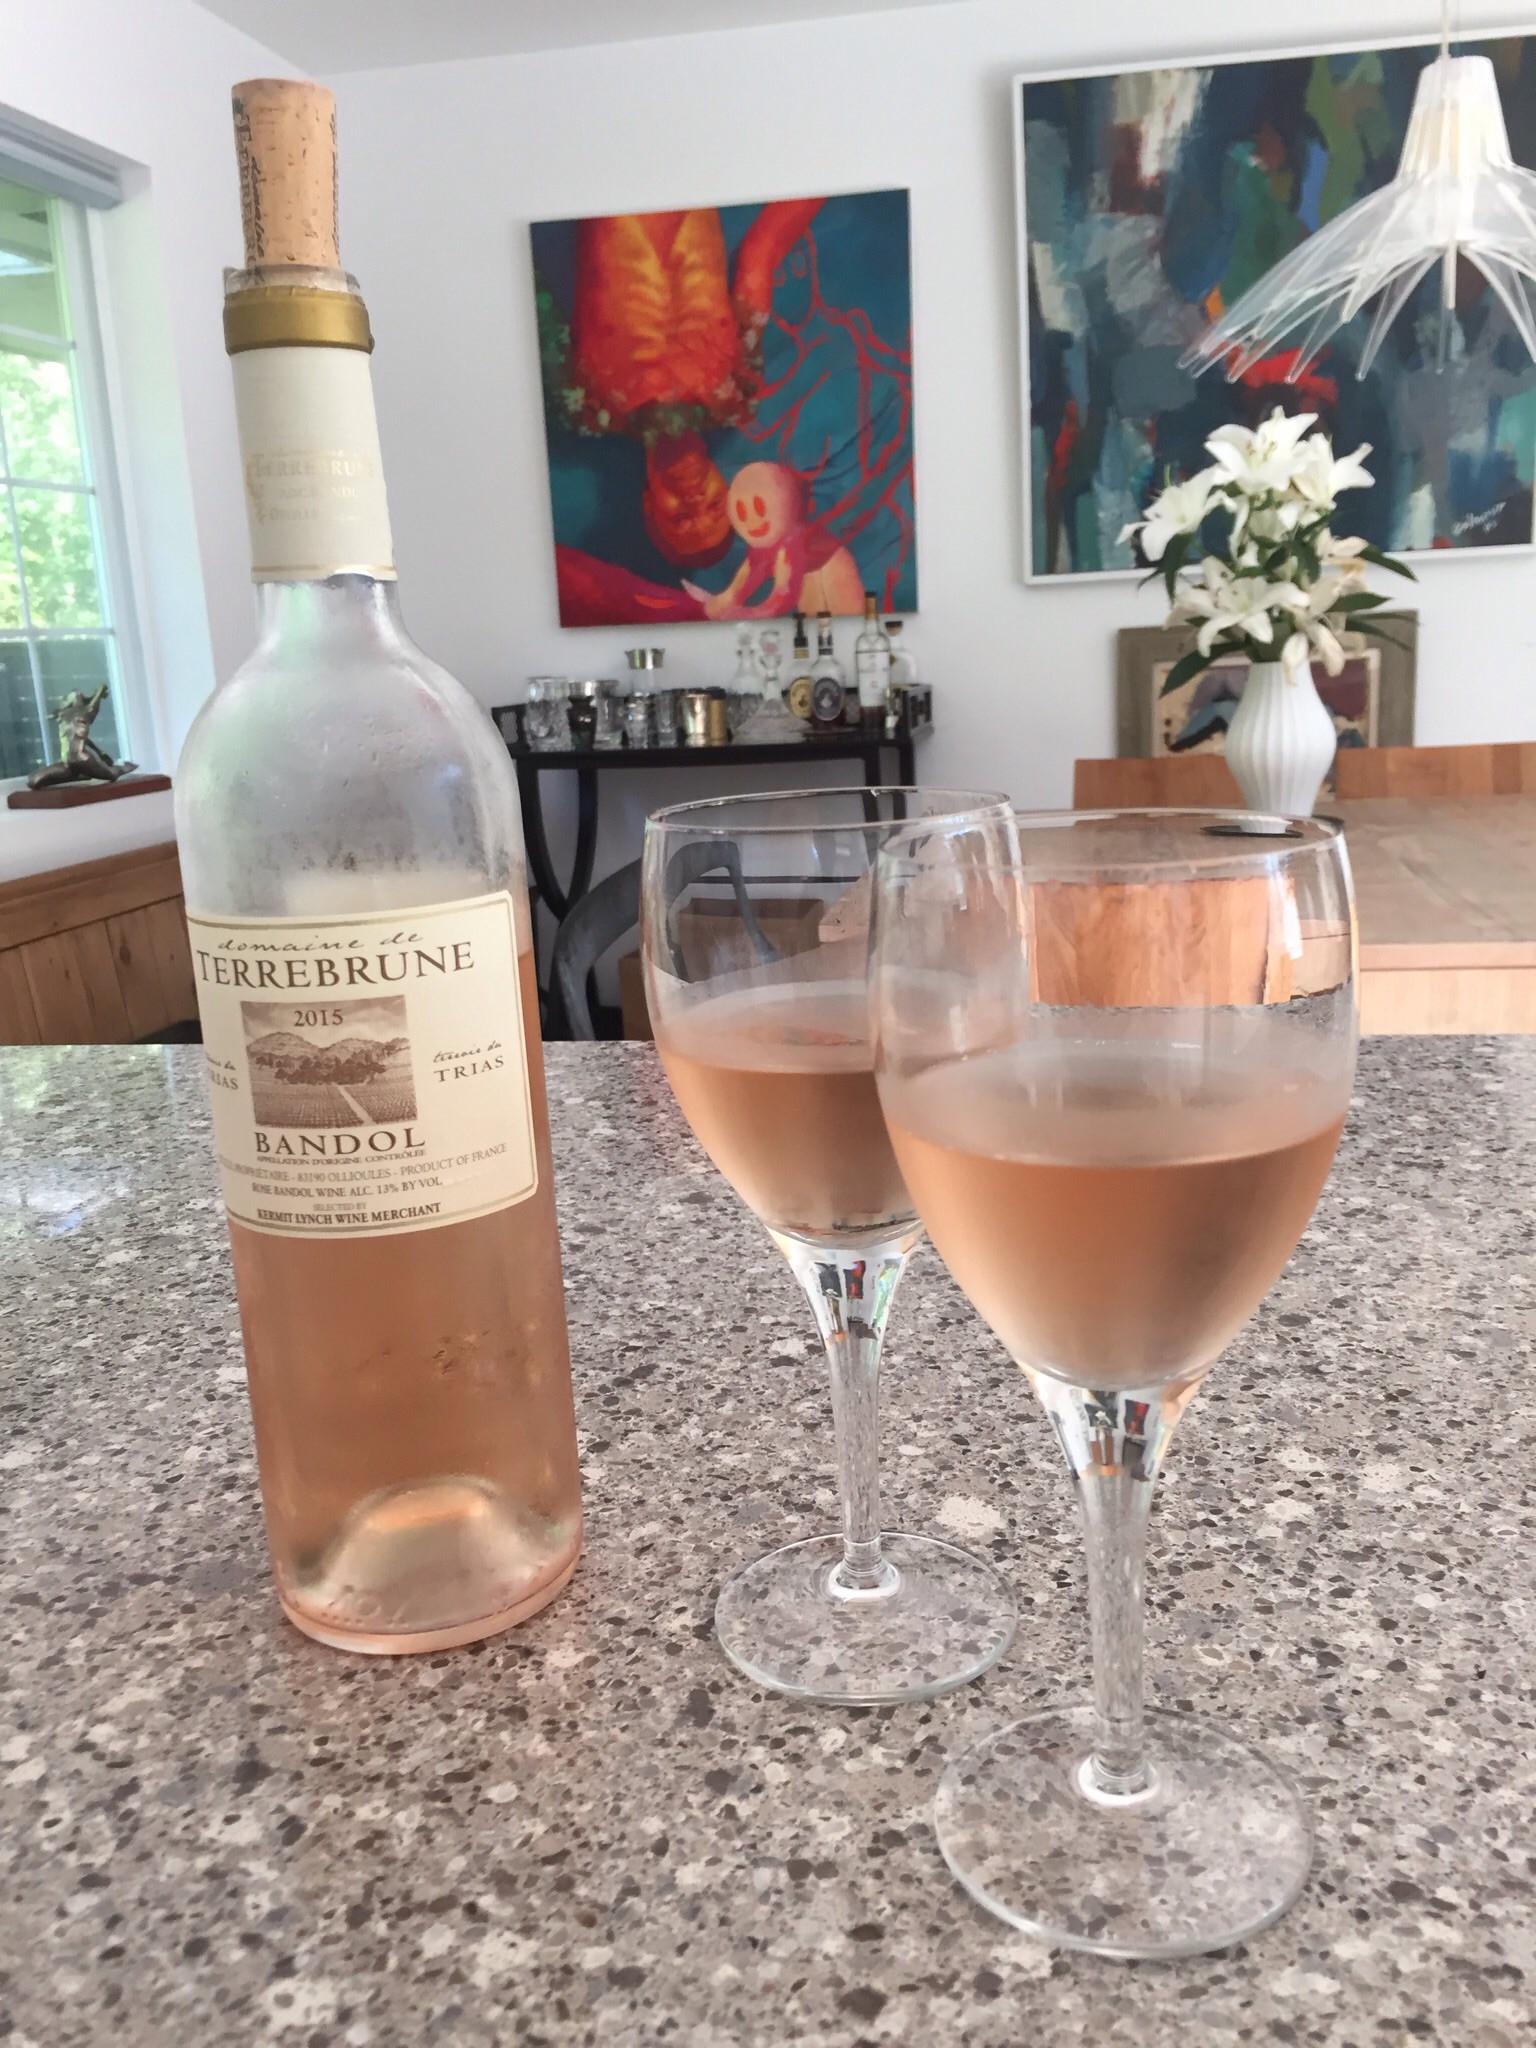 Relaxing by Phyllis's pool in Bridgehampton was the perfect setting for sampling rosés and we loved this one - medium dry, light fruit notes,floral bouquet and such a pretty color!